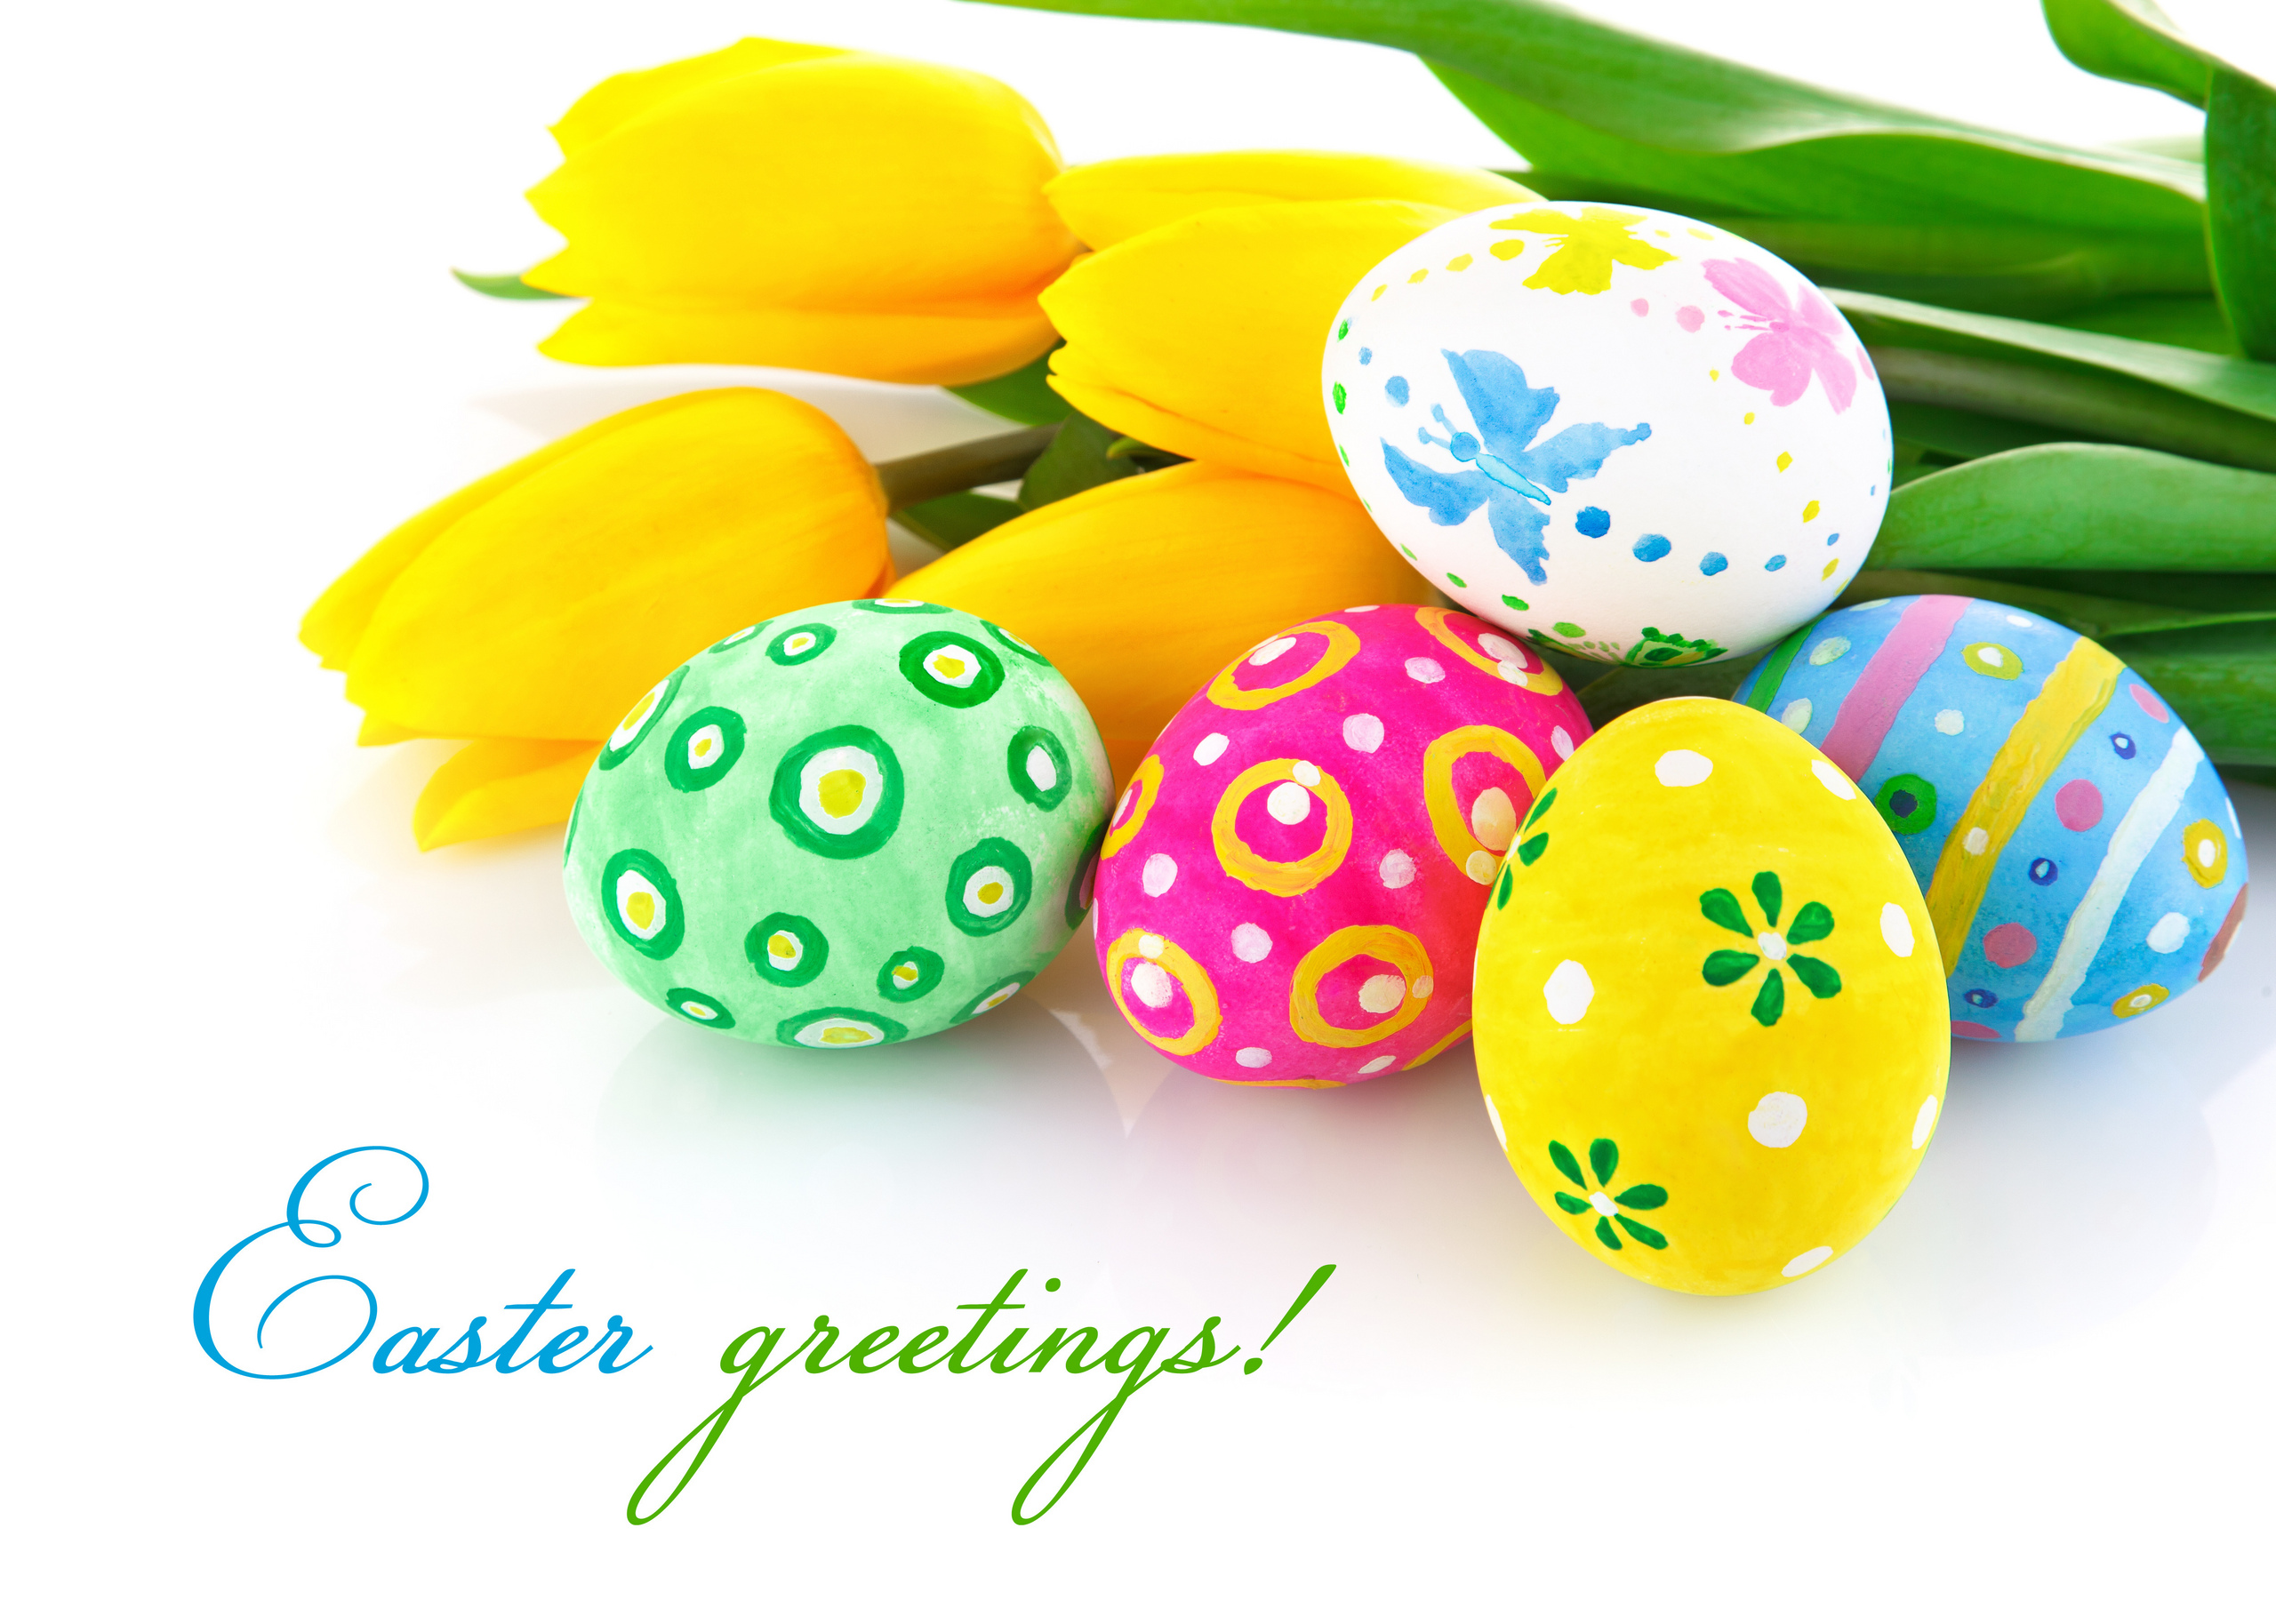 Easter 2018 Wallpapers HD Easter Images 2560x1827